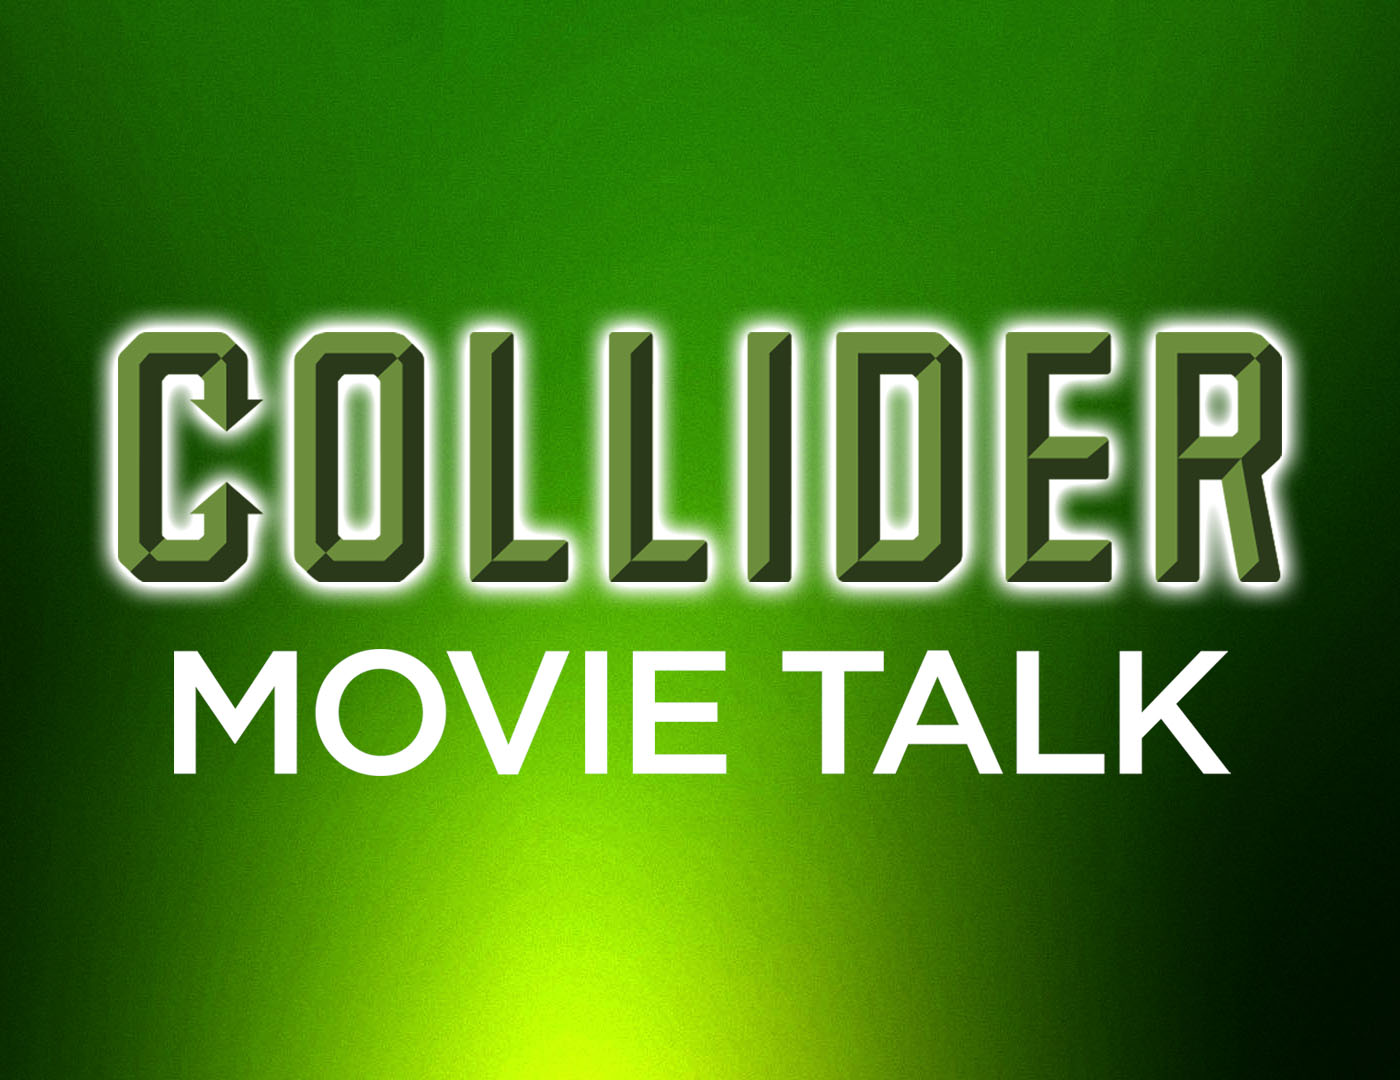 Avengers Vs X-Men Is Impossible Says Marvel's Kevin Feige - Collider Movie Talk